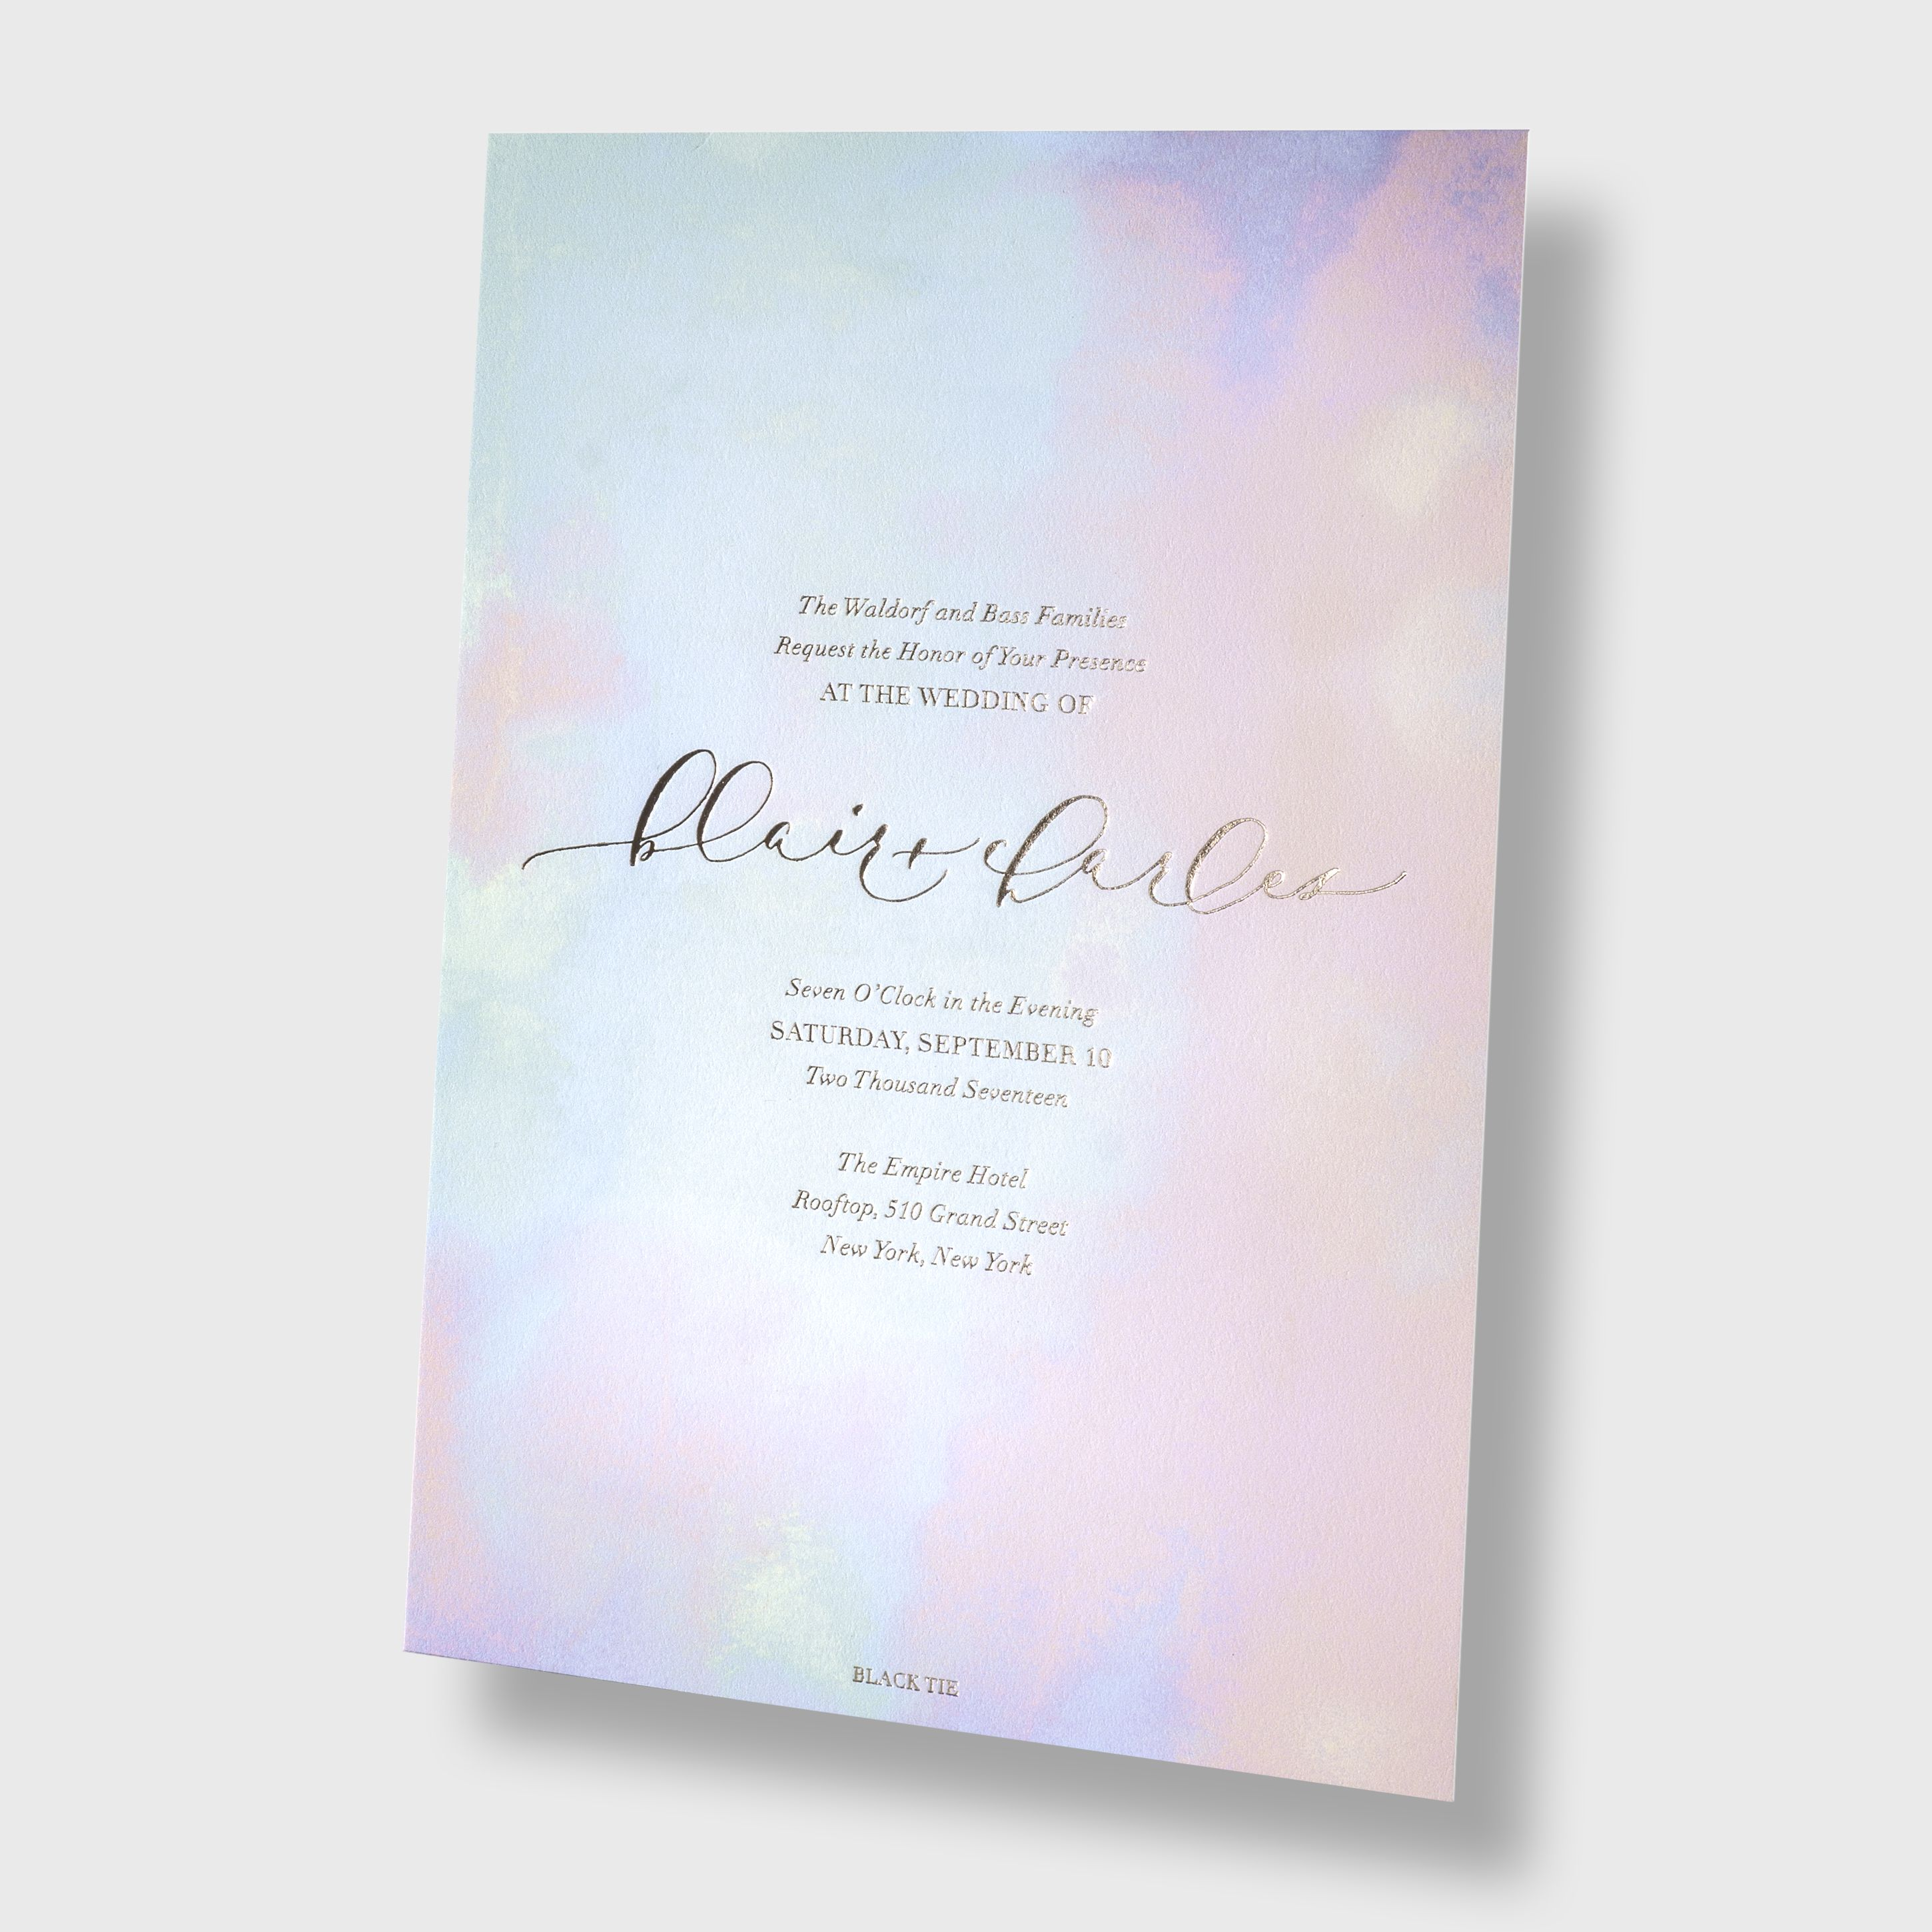 Bliss Bone Design Your Own Wedding Invitation Or Save